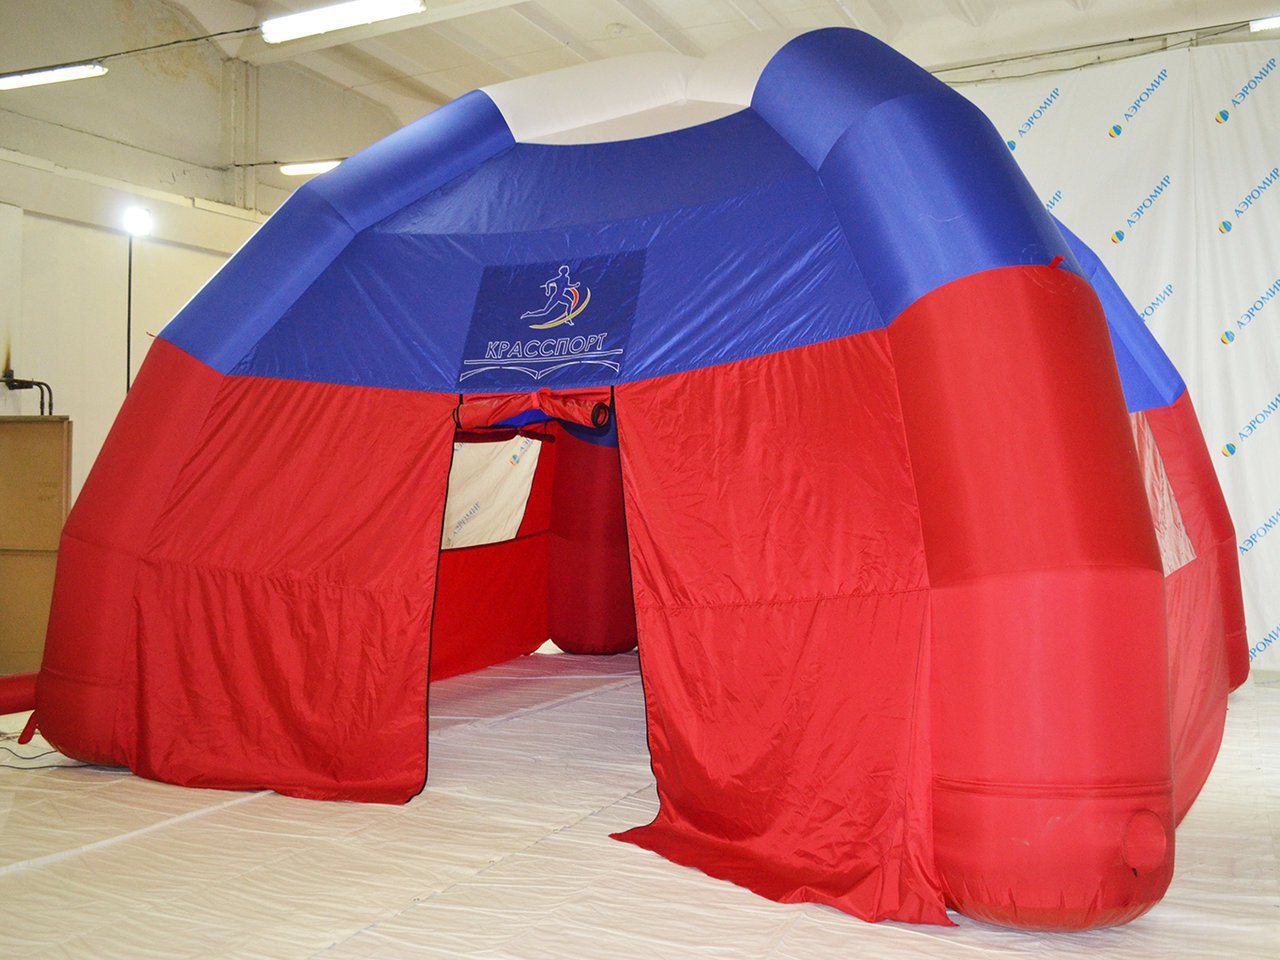 Inflatable tent Krasport for the city of Krasnoyarsk.